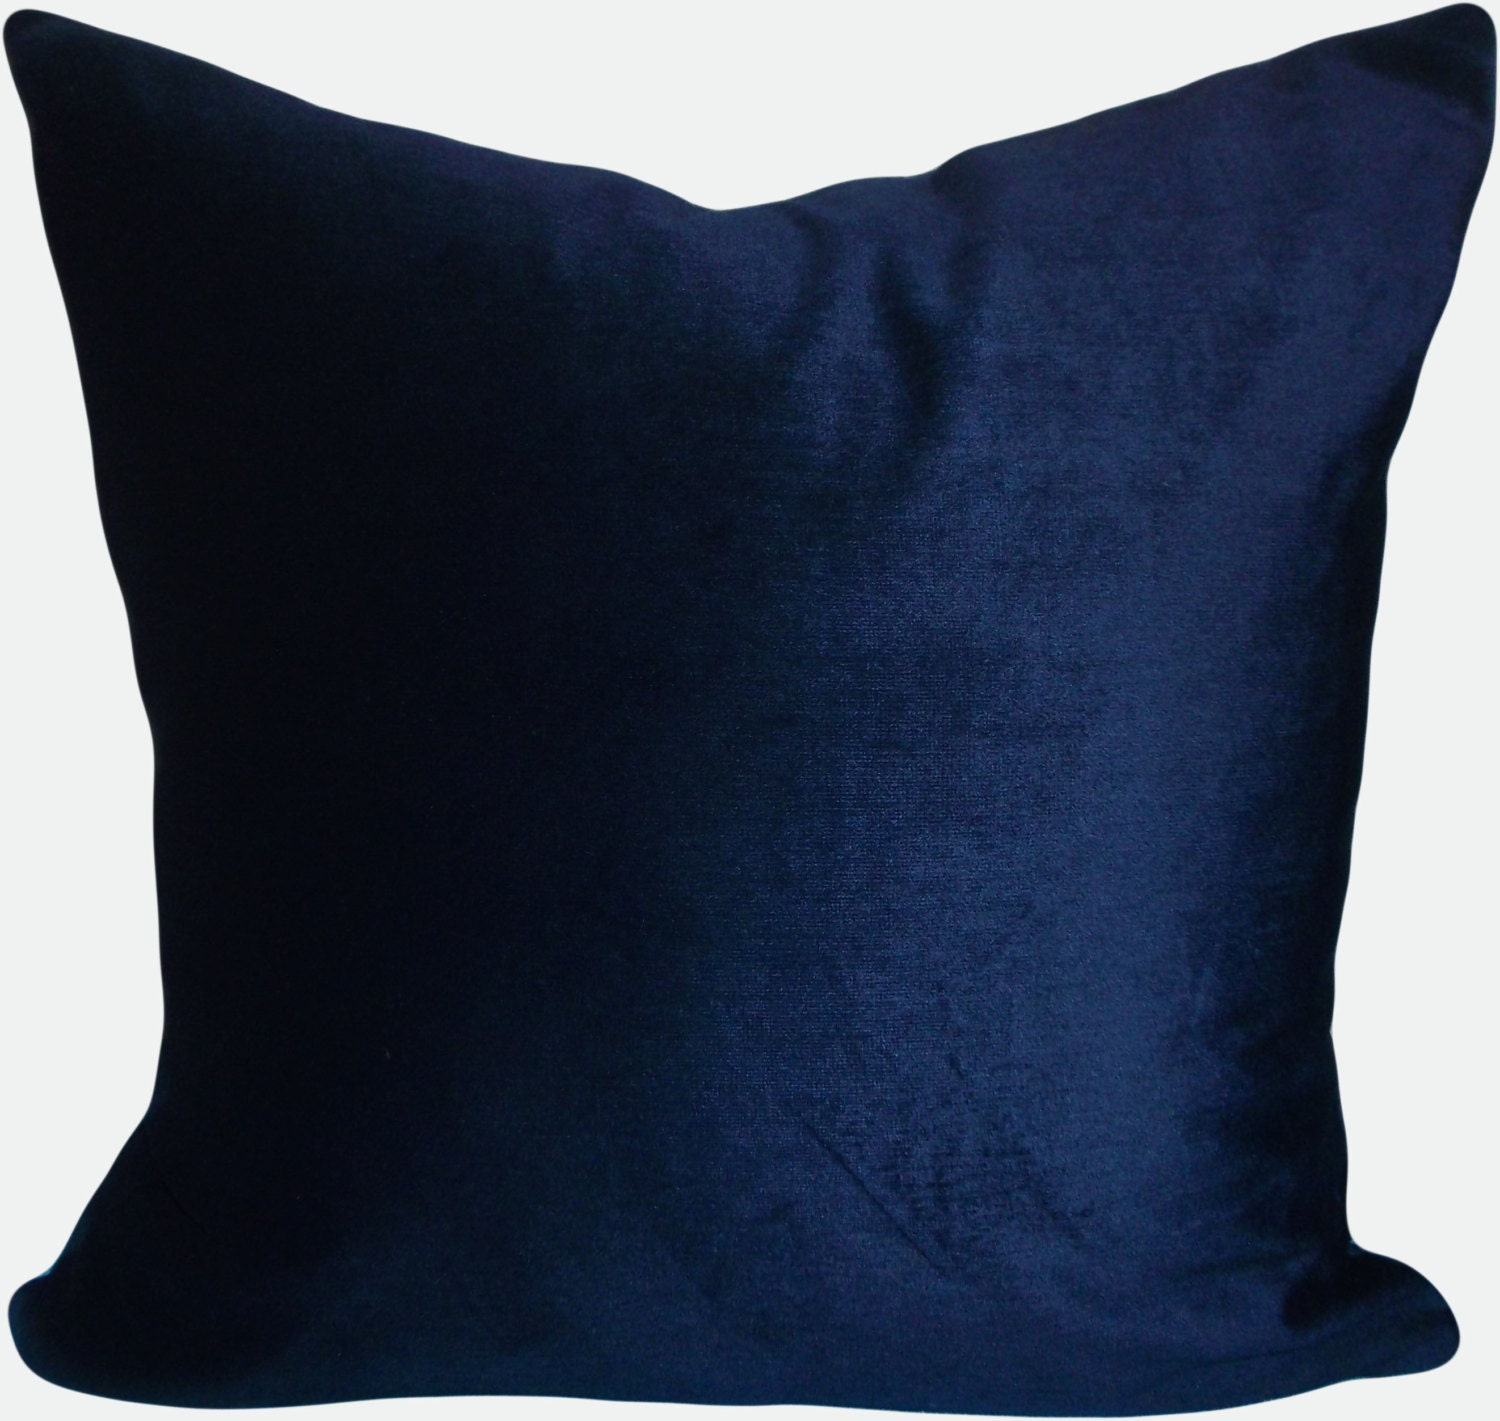 Navy Blue Throw Pillow Covers : Navy Blue Velvet Pillow Cover Throw Pillow by PillowTimeGirls